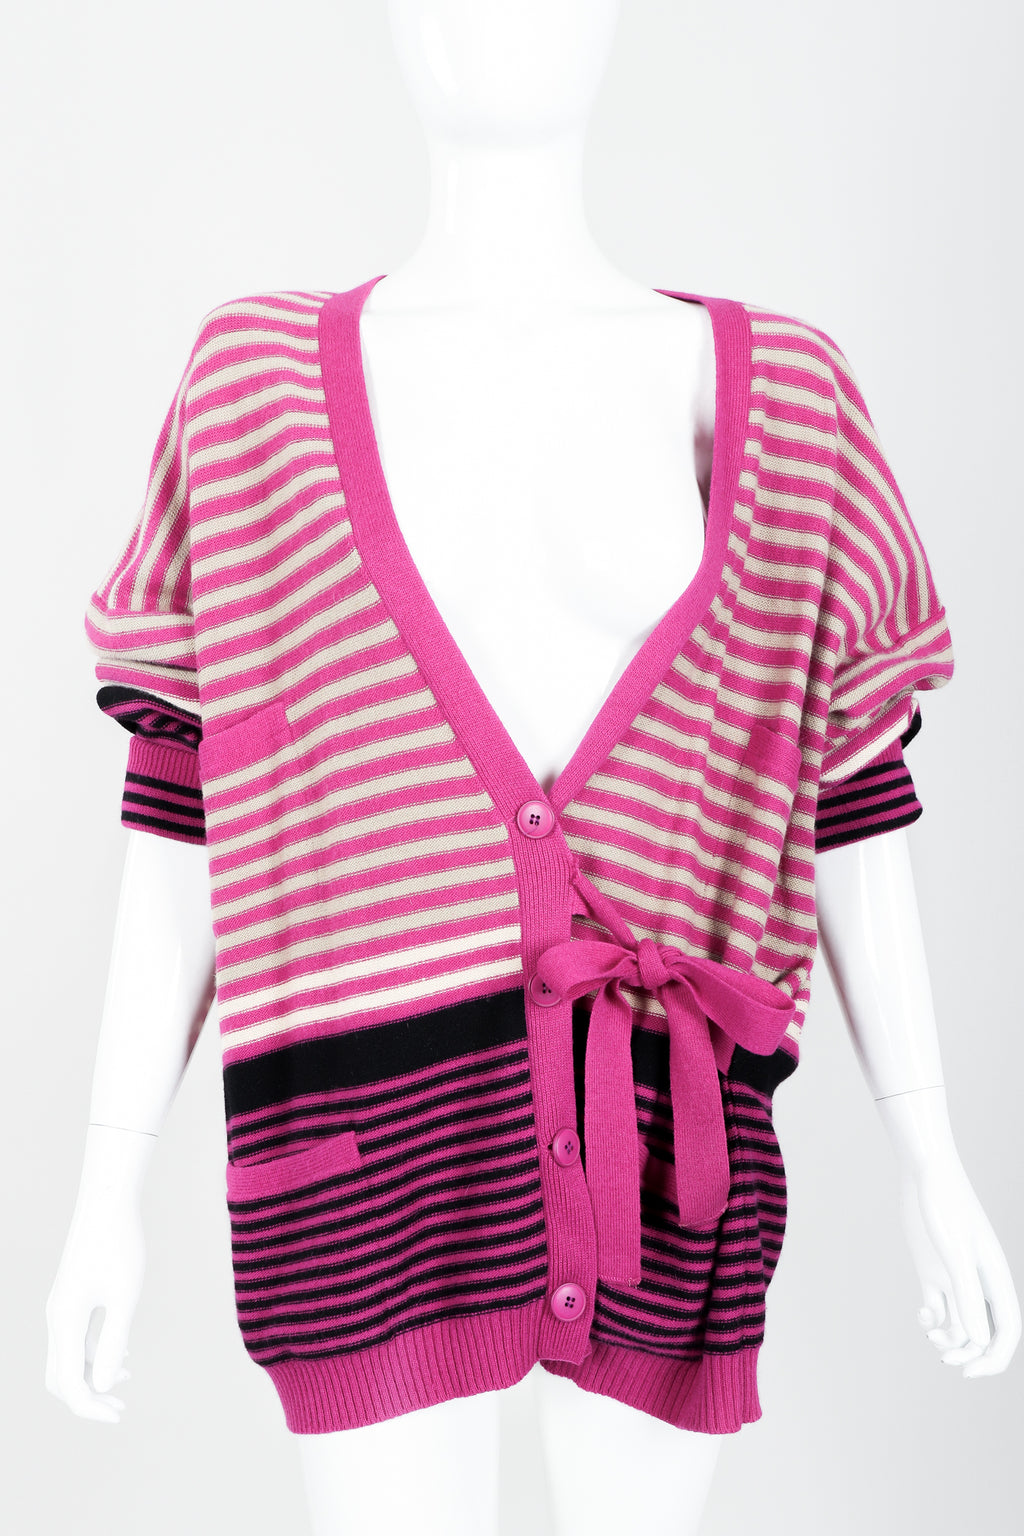 Vintage Sonia Rykiel Fuchsia Stripe Boyfriend Cardigan on Mannequin front at Recess